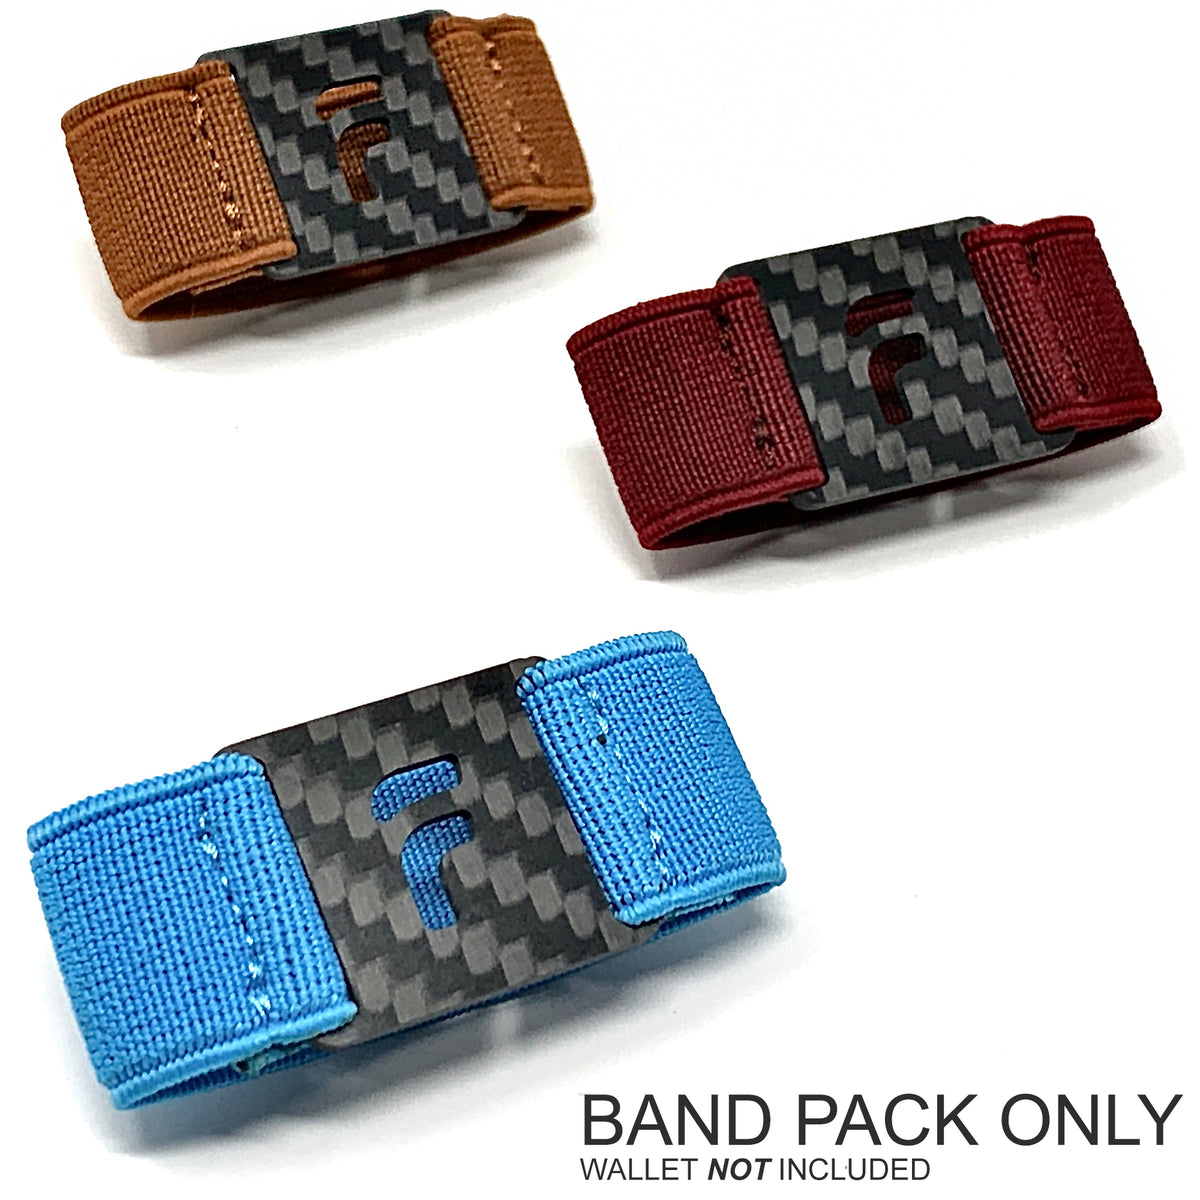 PRESTIGE BAND PACK ONLY (3 Bands - Rust / Firebrick Red / Sky Blue) Wallet NOT Included